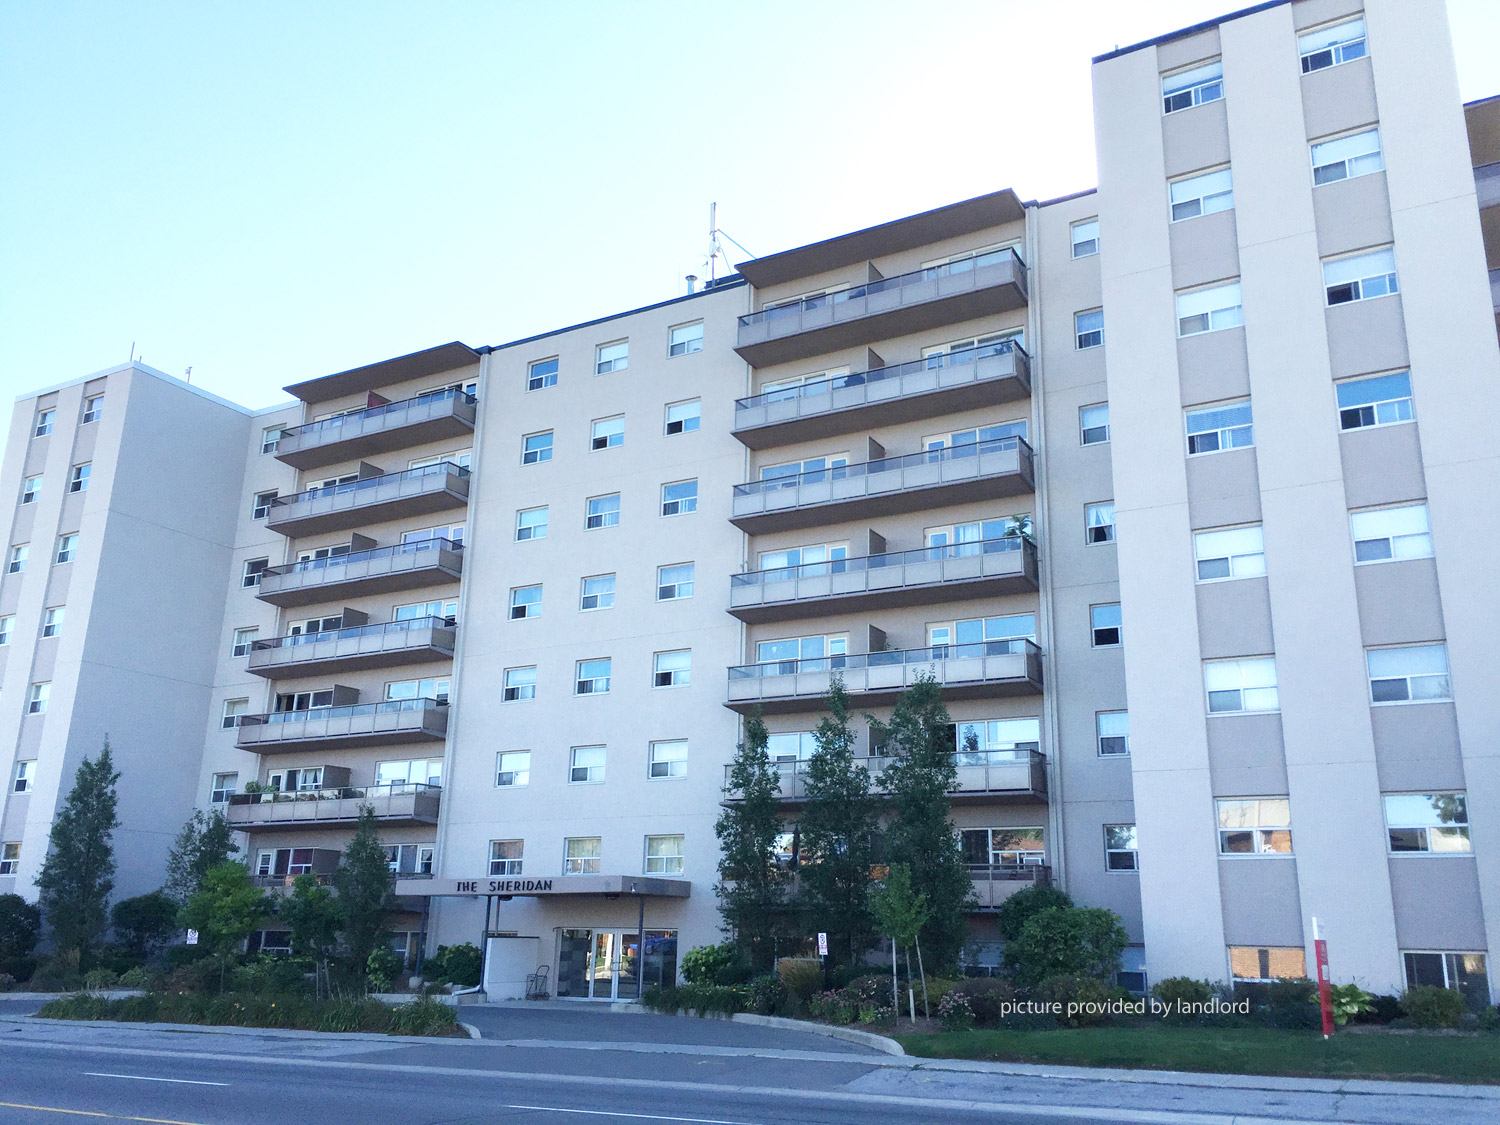 345 Lakeshore Rd W, MISSISSAUGA, ON : 2 Bedroom for rent ...